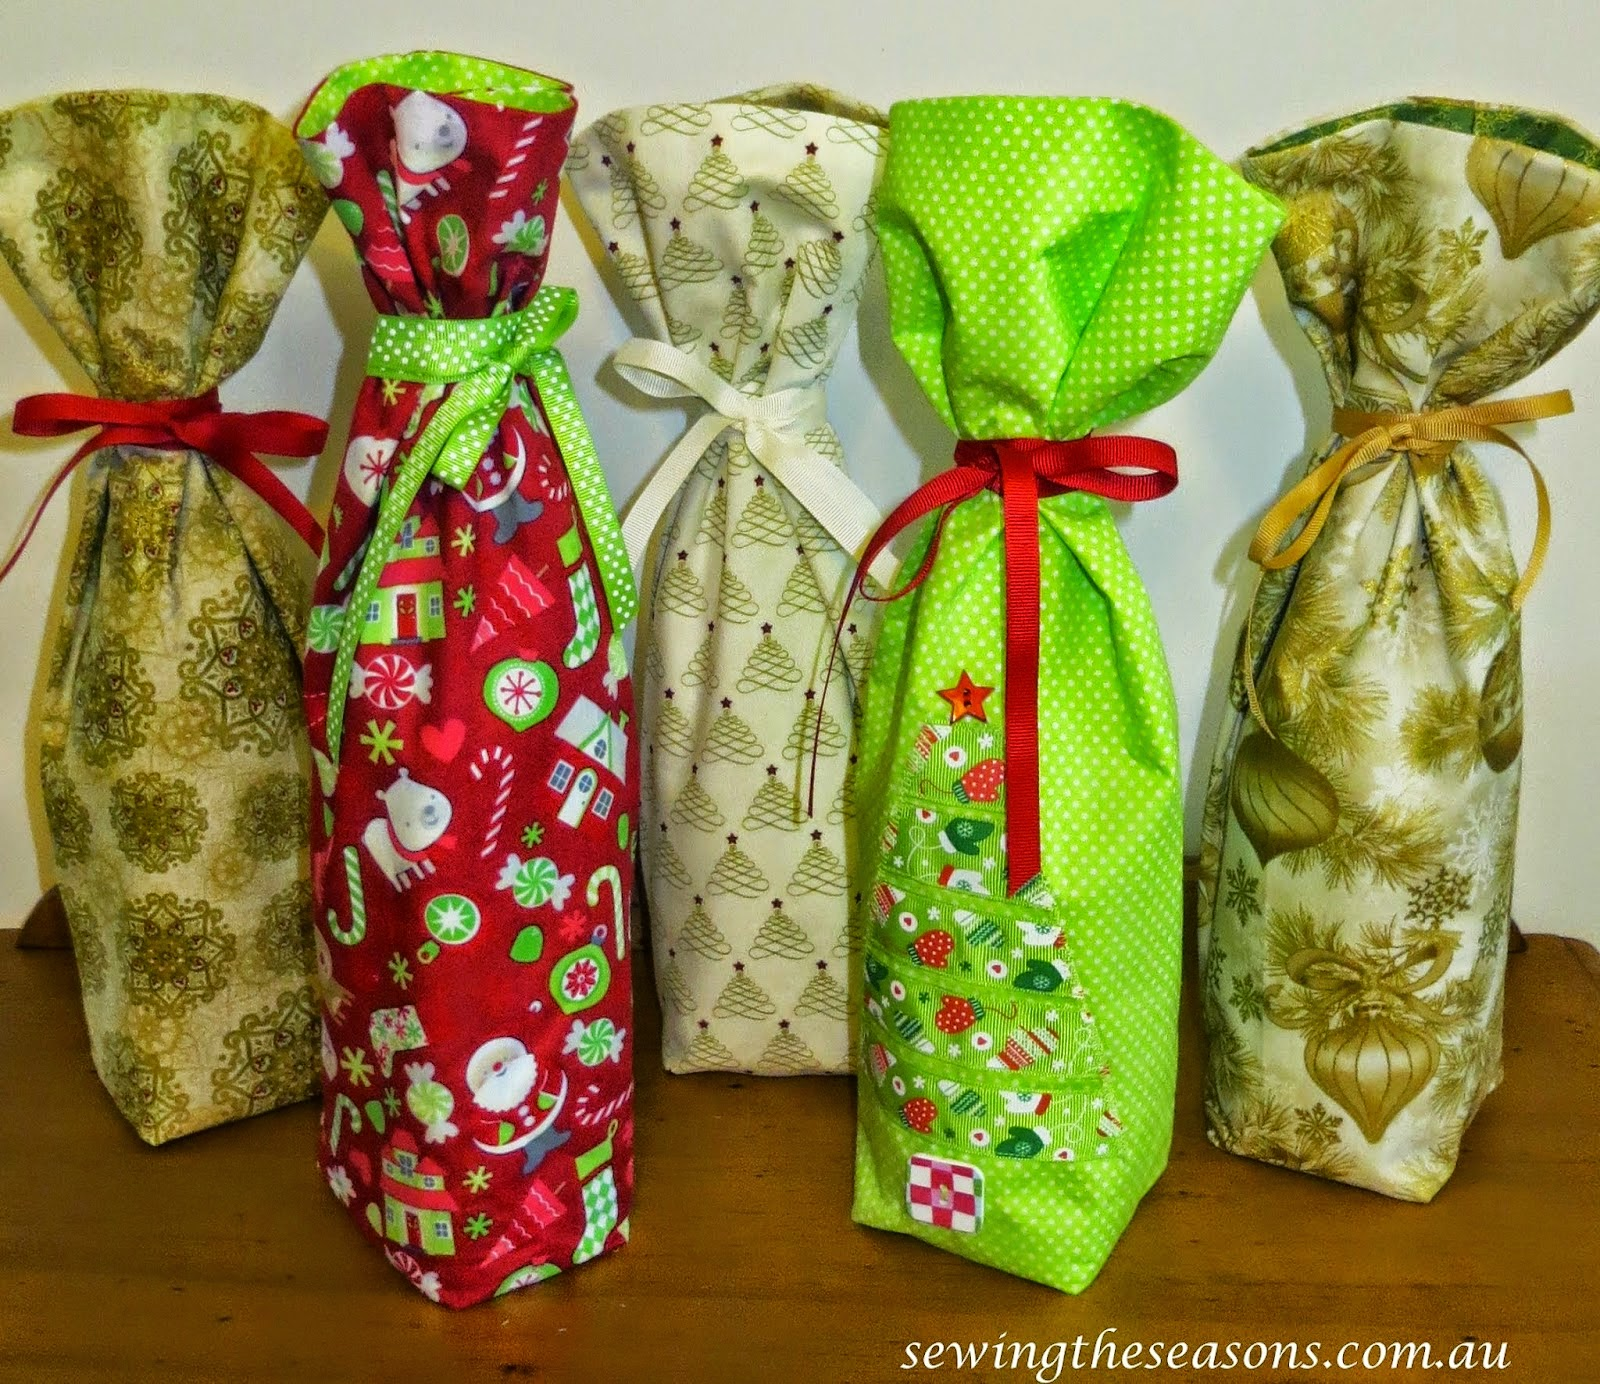 http://www.sewingtheseasons.com.au/2014/12/bottle-gift-bag.html